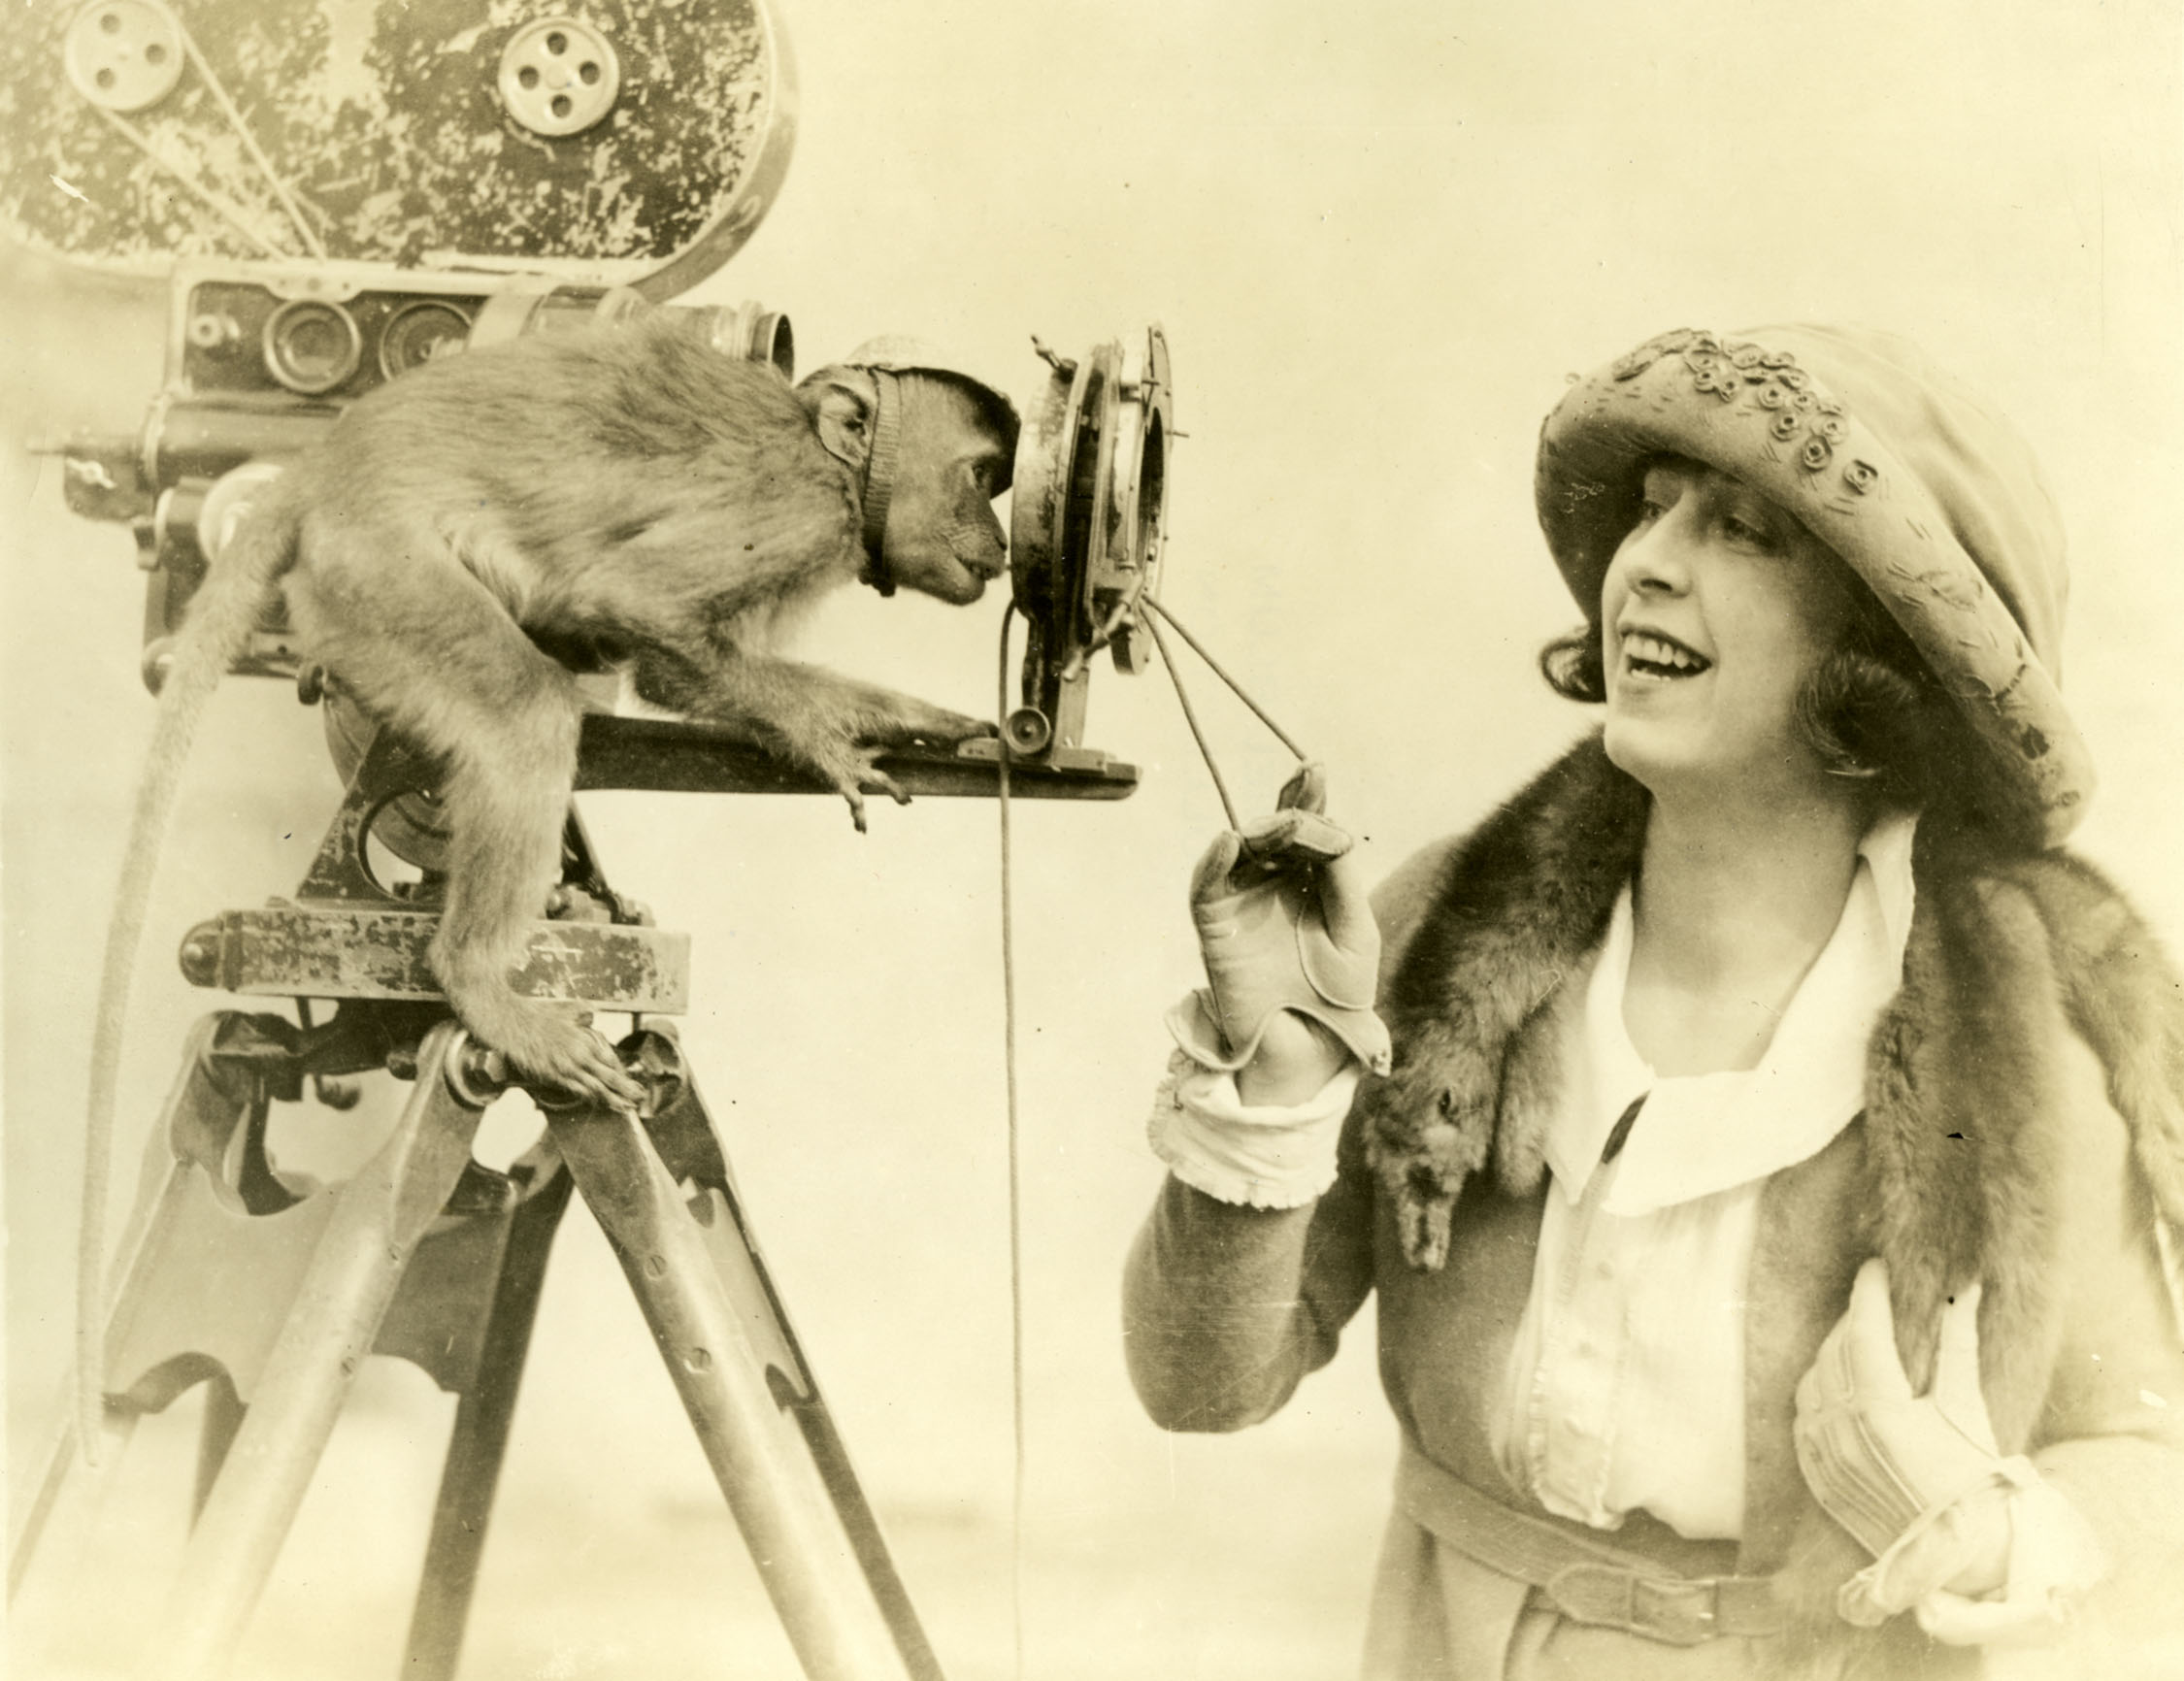 """Silent cinema star Dorothy Phillips and her pet monkey, circa 1918.  Original caption reads, """"This is one of the rare snapshots which a photographer gets only once in a peagreen moon. Dorothy Phillips, star of Allen Holubar's """"The Soul Seeker"""" is showing simian how a fade out is made with the frontal attachment to the camera. The monk is taking a canny amused interest in the prodeeding (sic)."""" (Holubar's film was released under the title A Soul for Sale.)"""